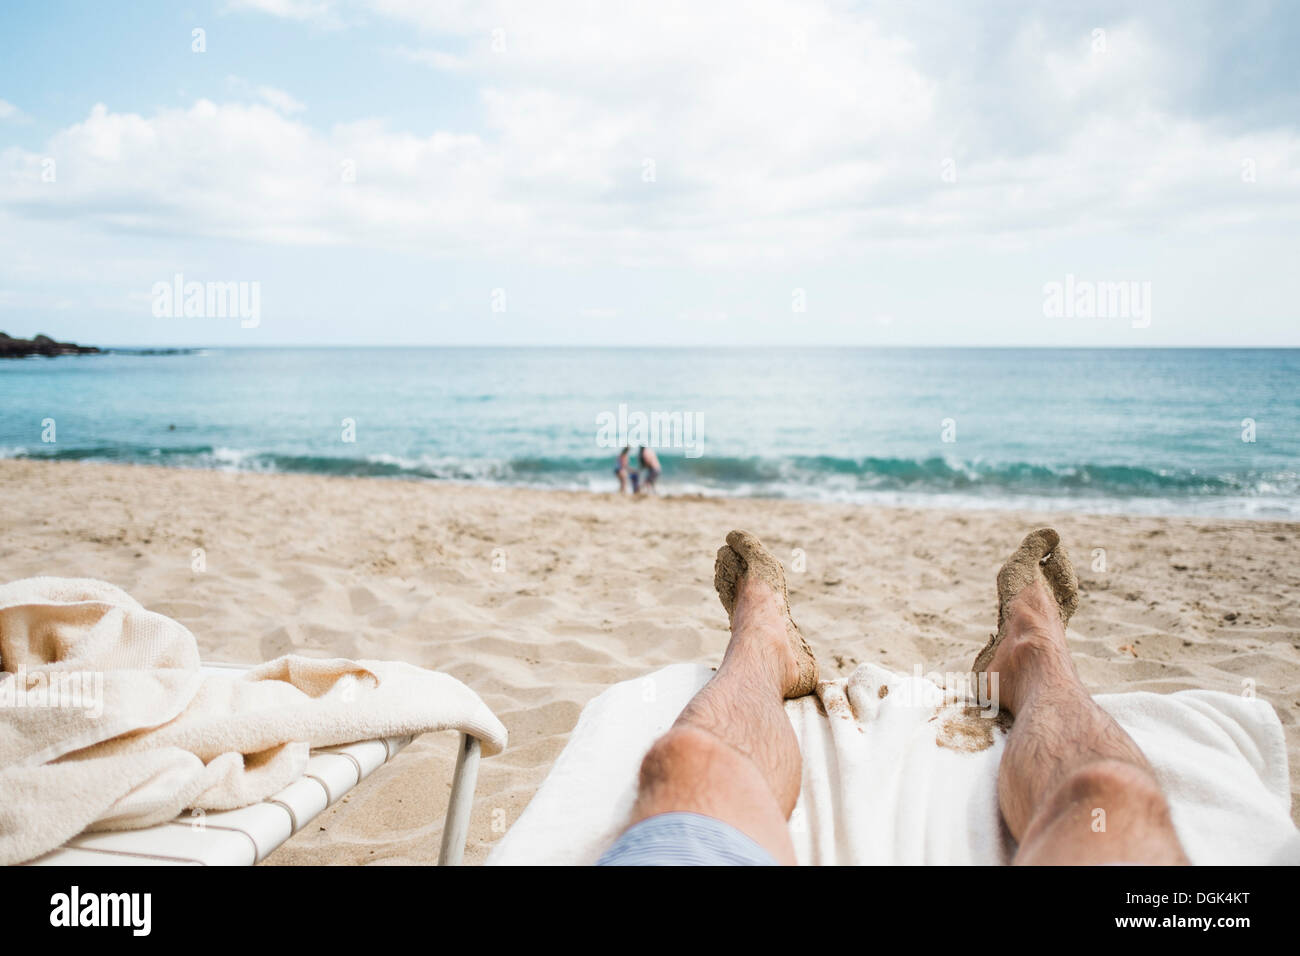 View of beach from sun lounger, Lanai City, Hawaii, USA - Stock Image